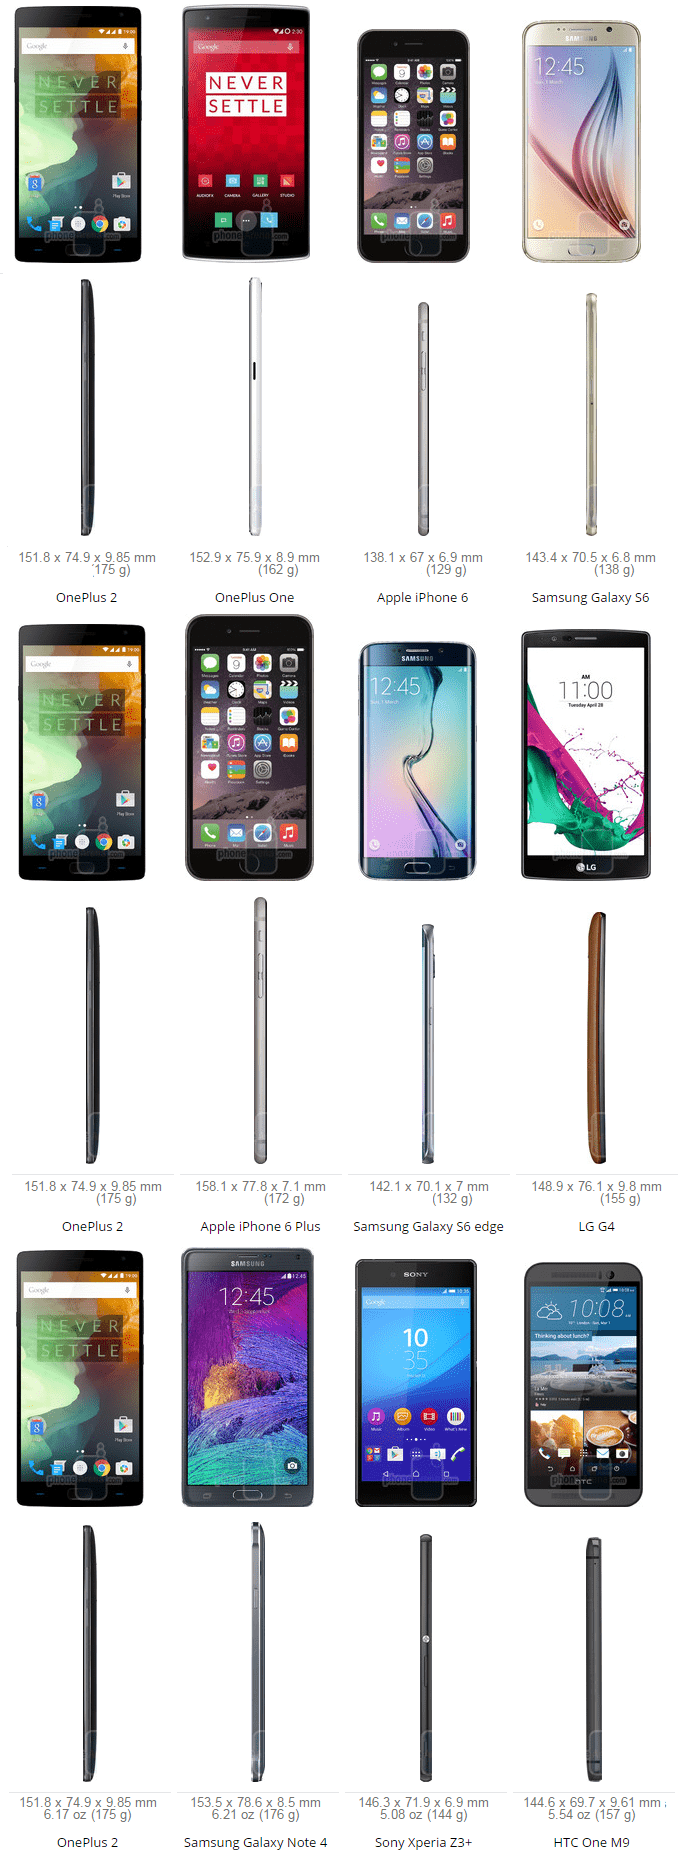 OnePlus 2 Size Comparsione